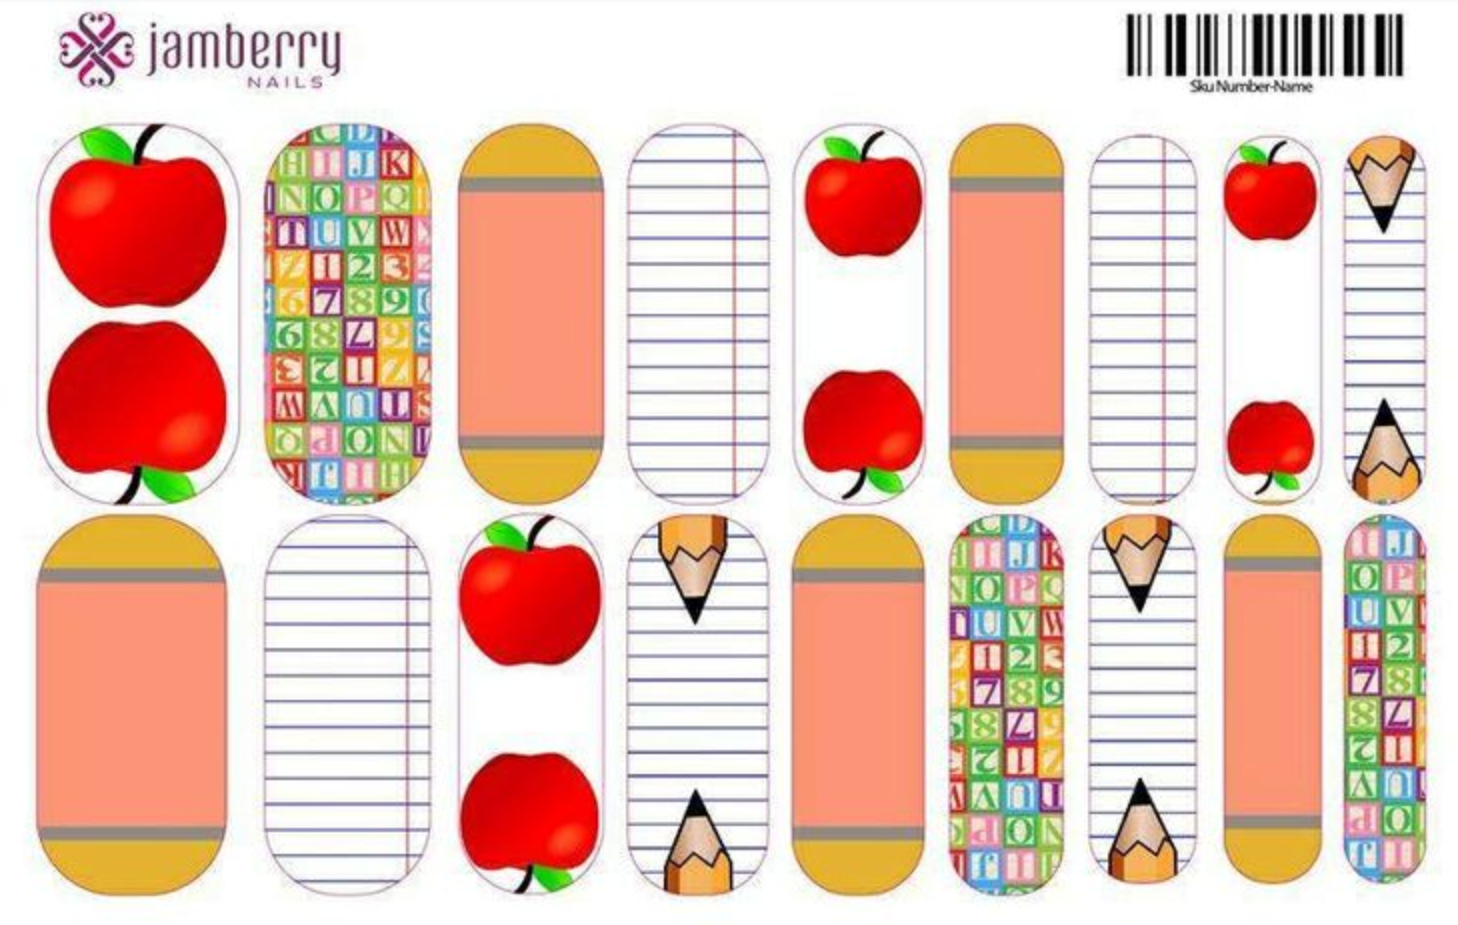 Jamberry Nail Wraps by Taylor